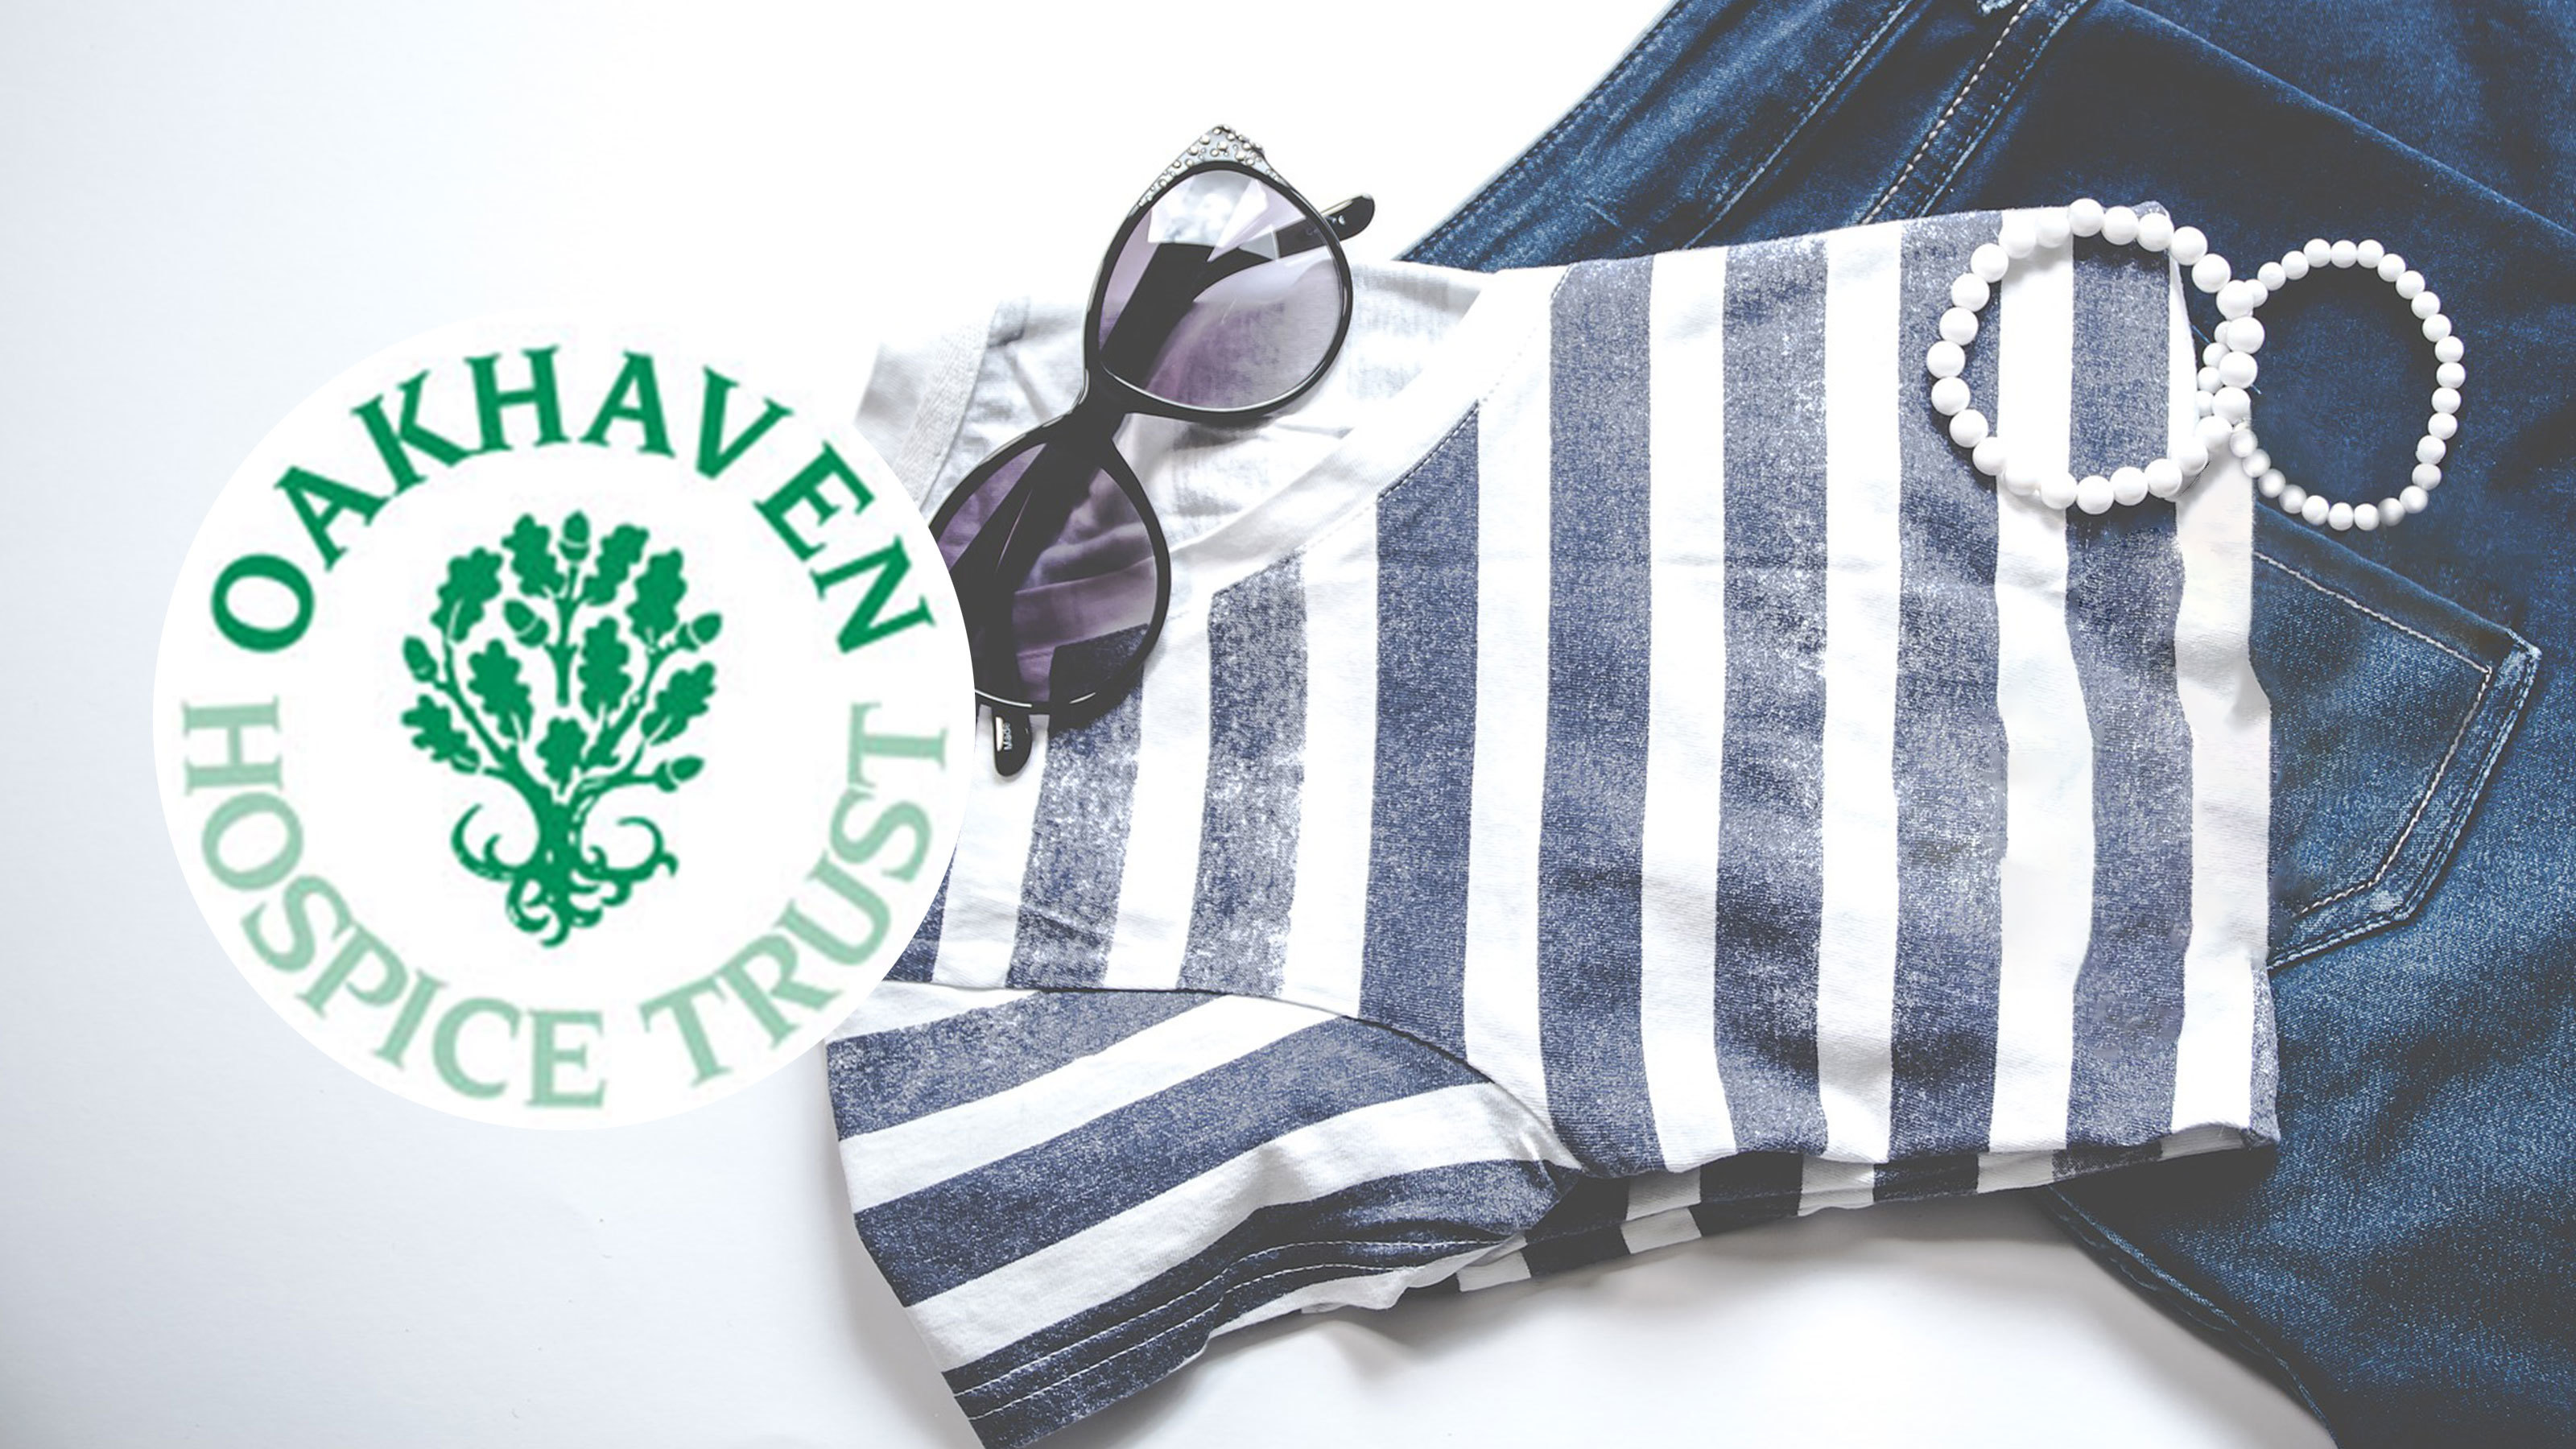 Casual-clothes-Oakhaven-Hospice-logo-fundraising